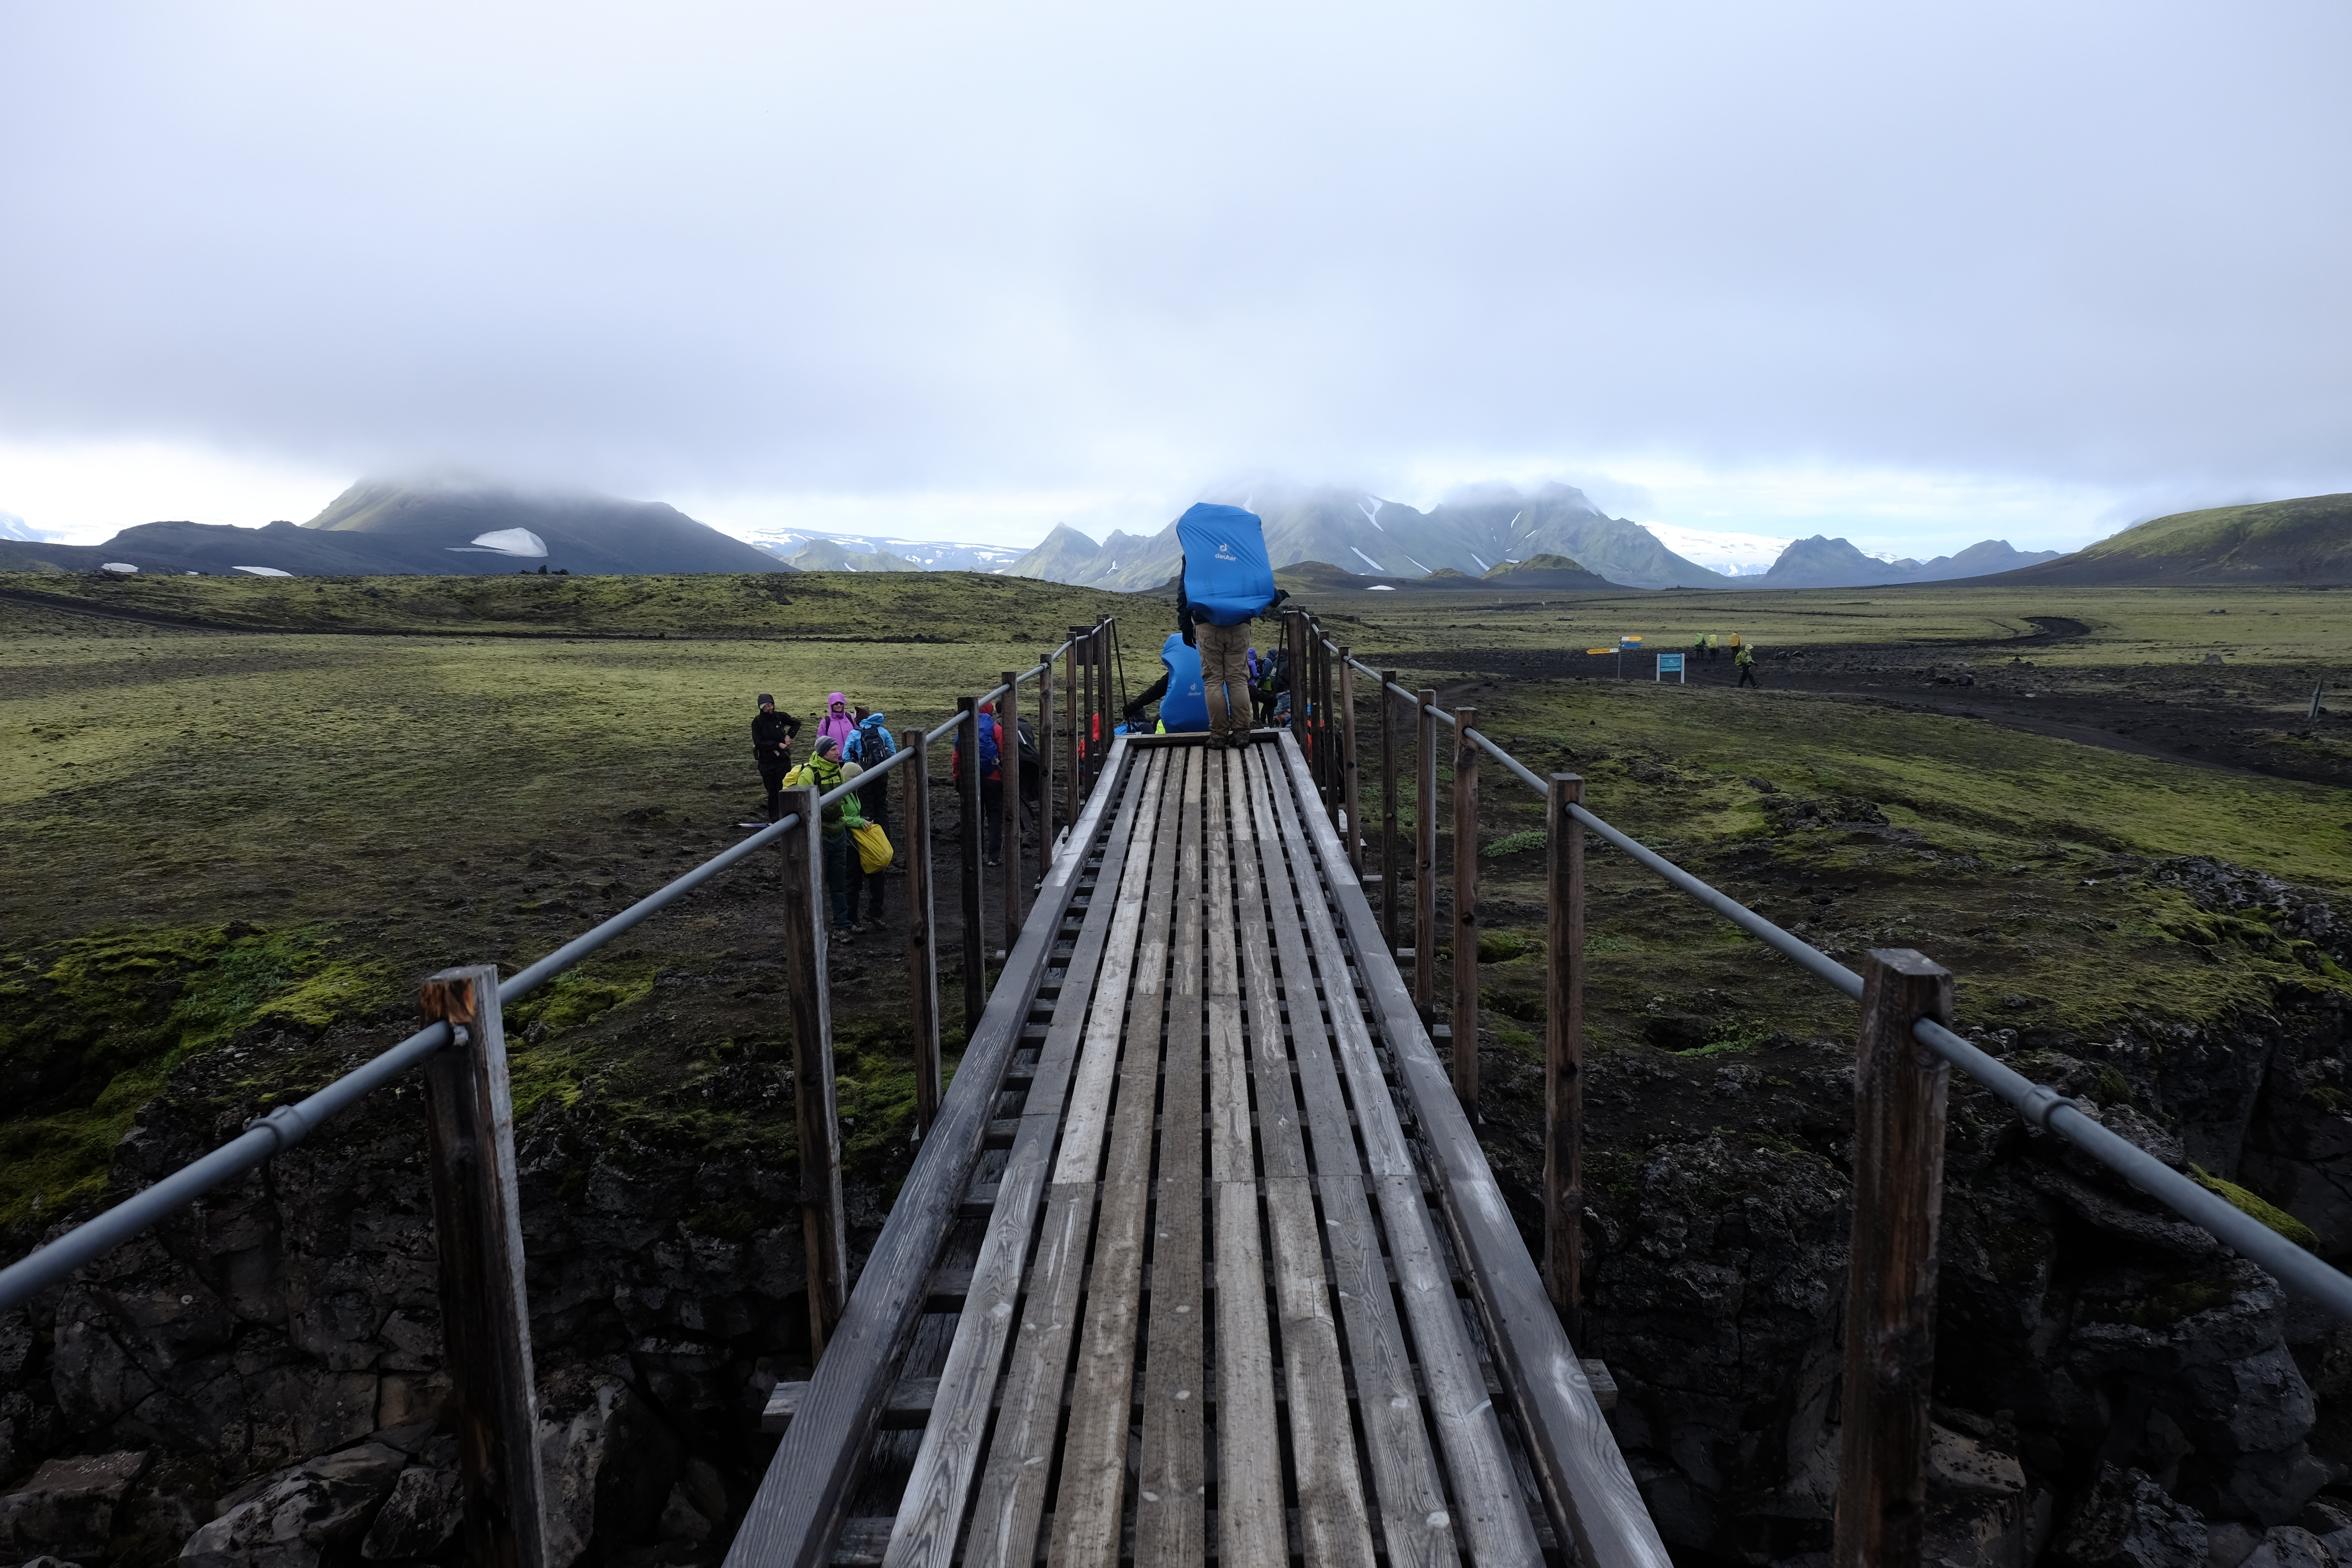 Hiking in Iceland 22nd-27th of Jun 2021